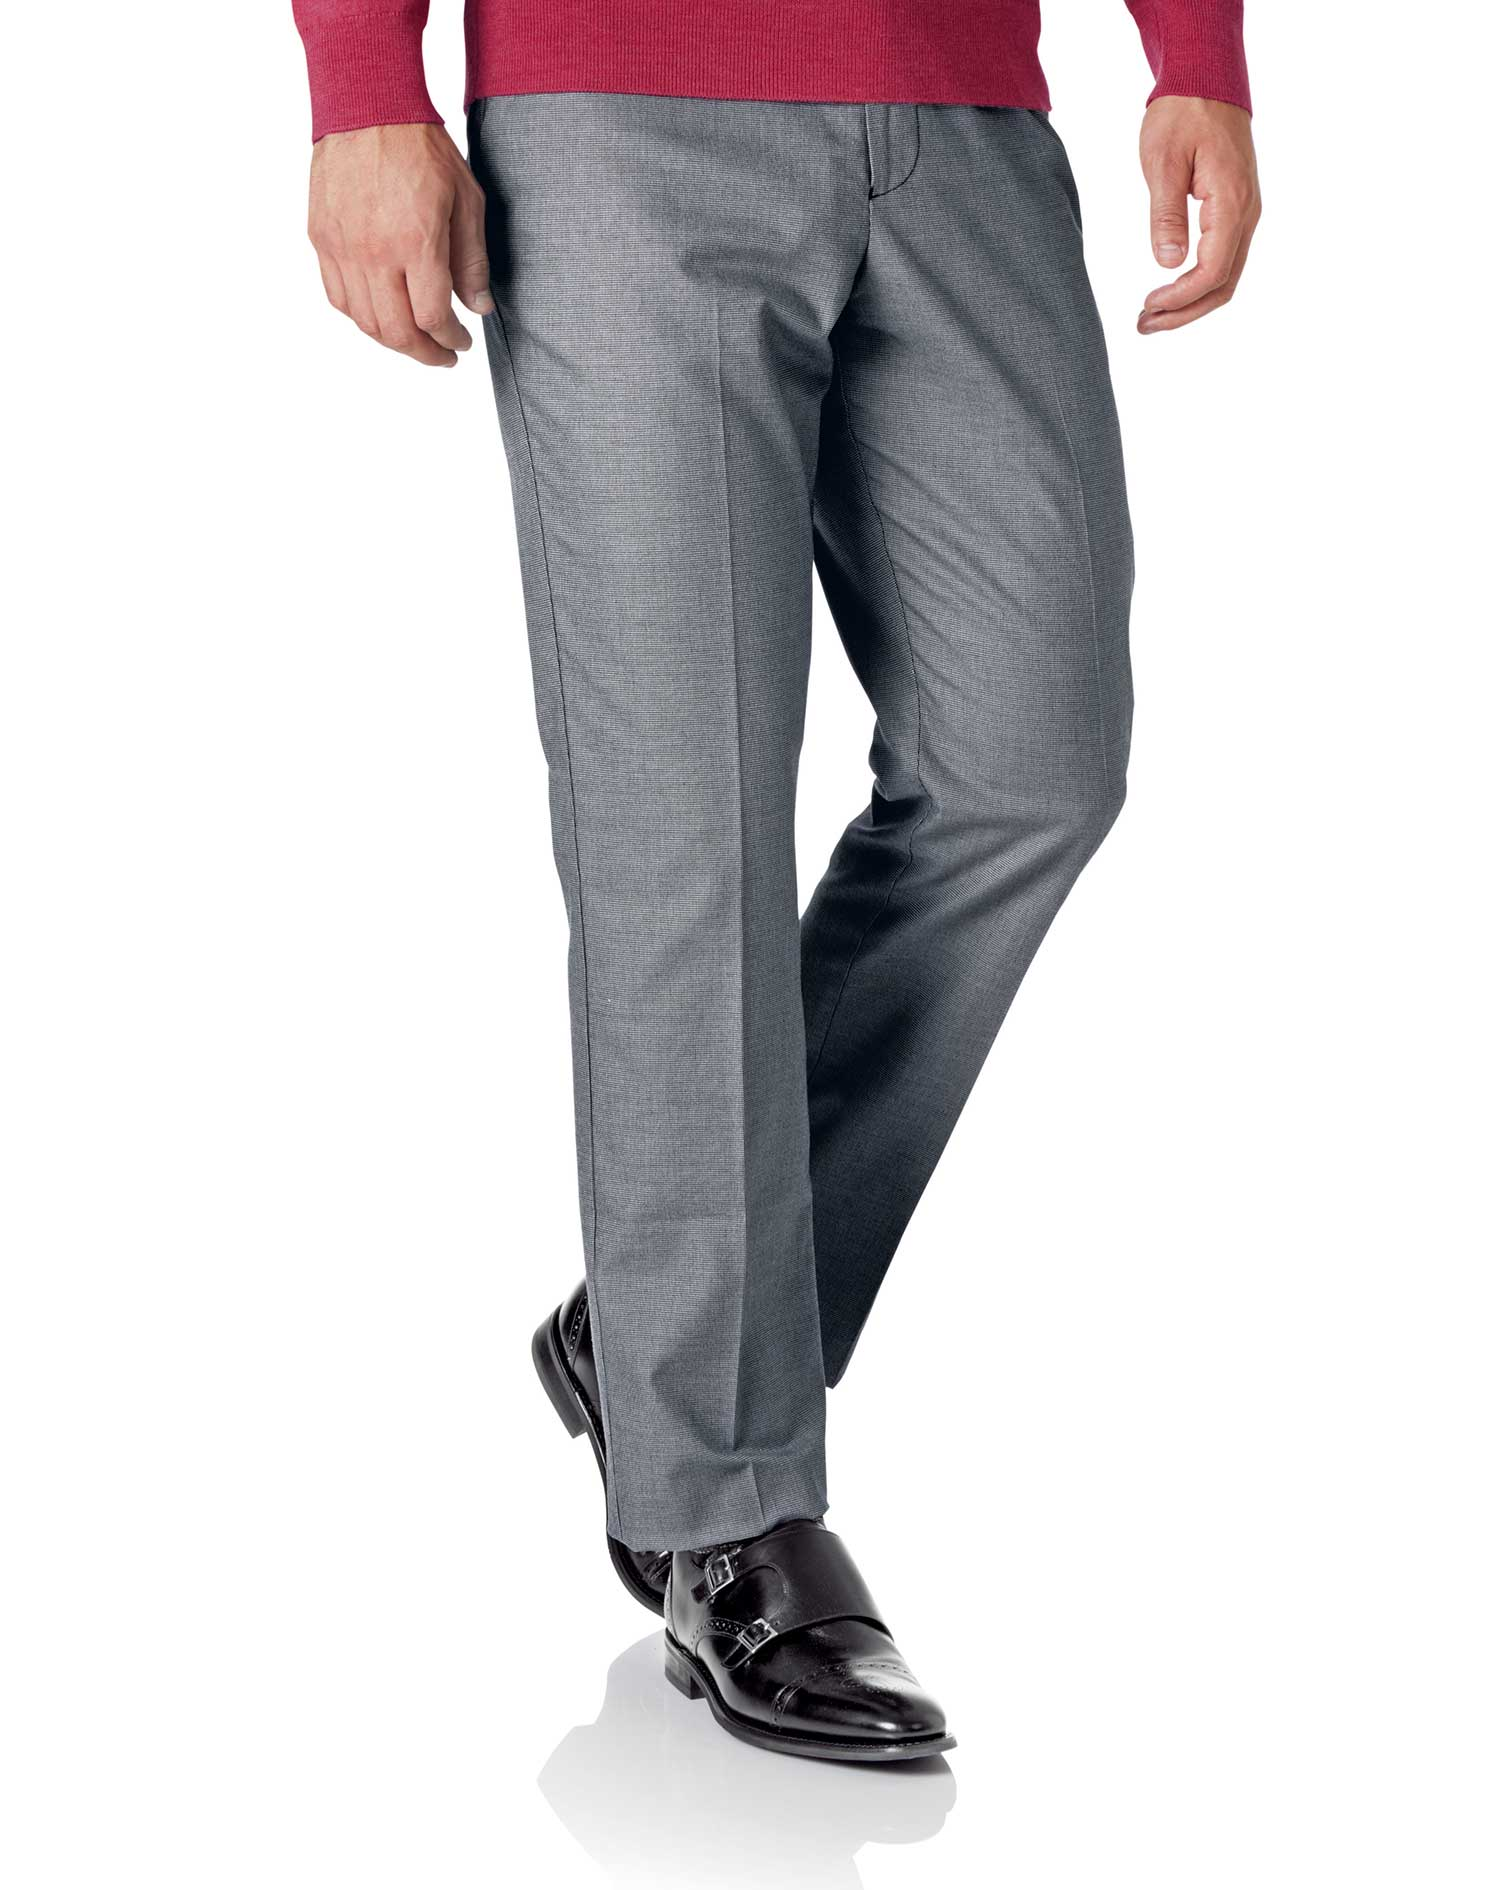 White and Navy Classic Fit Stretch Non-Iron Trousers Size W36 L34 by Charles Tyrwhitt